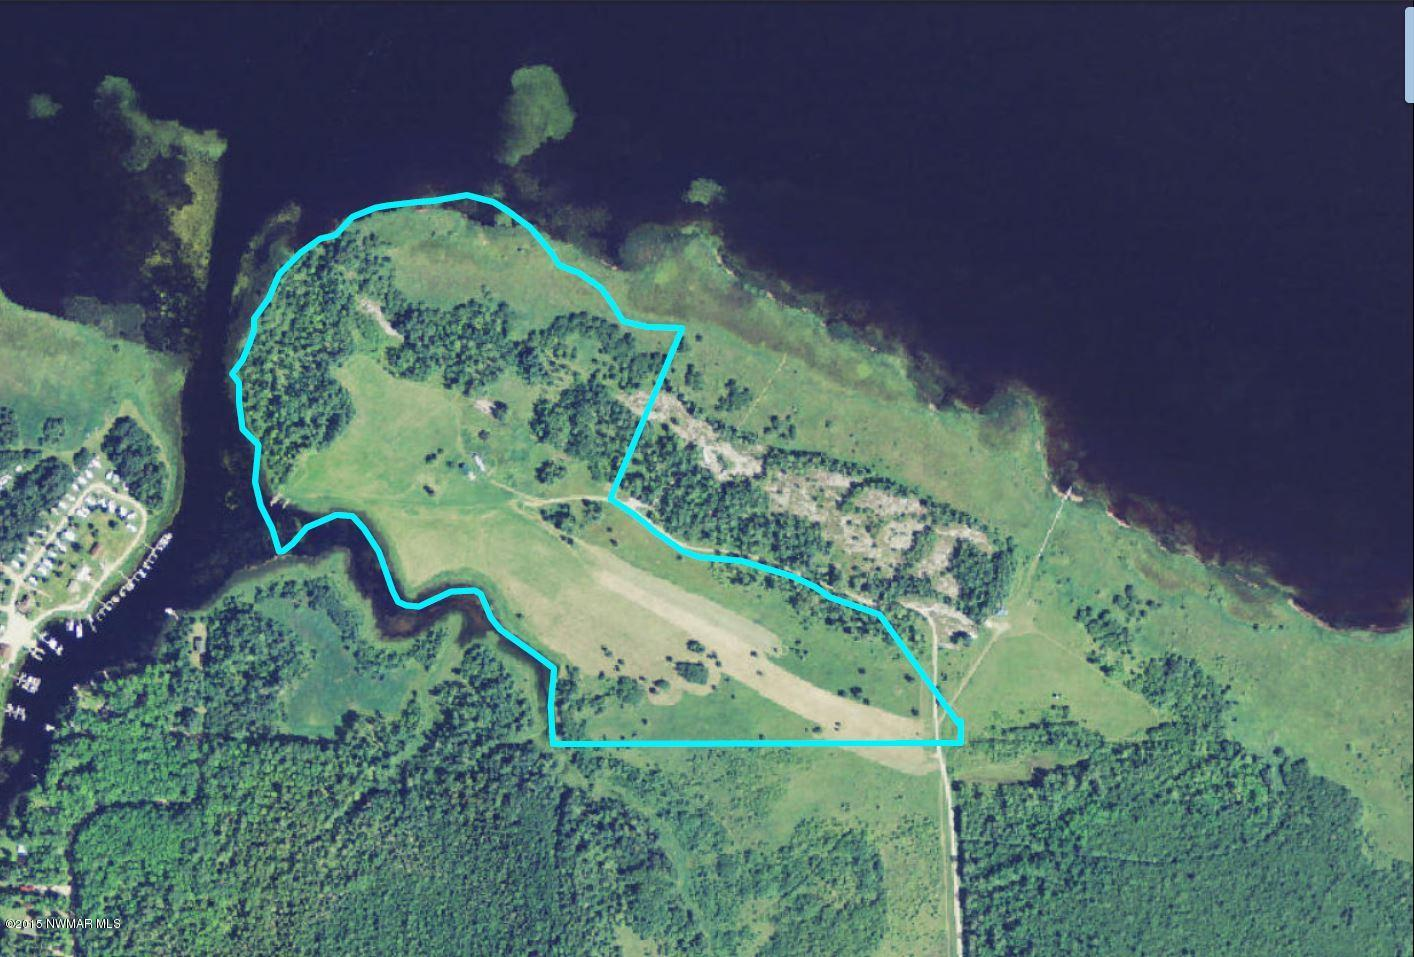 NELSON DRIVE NW, ANGLE INLET, MN 56711